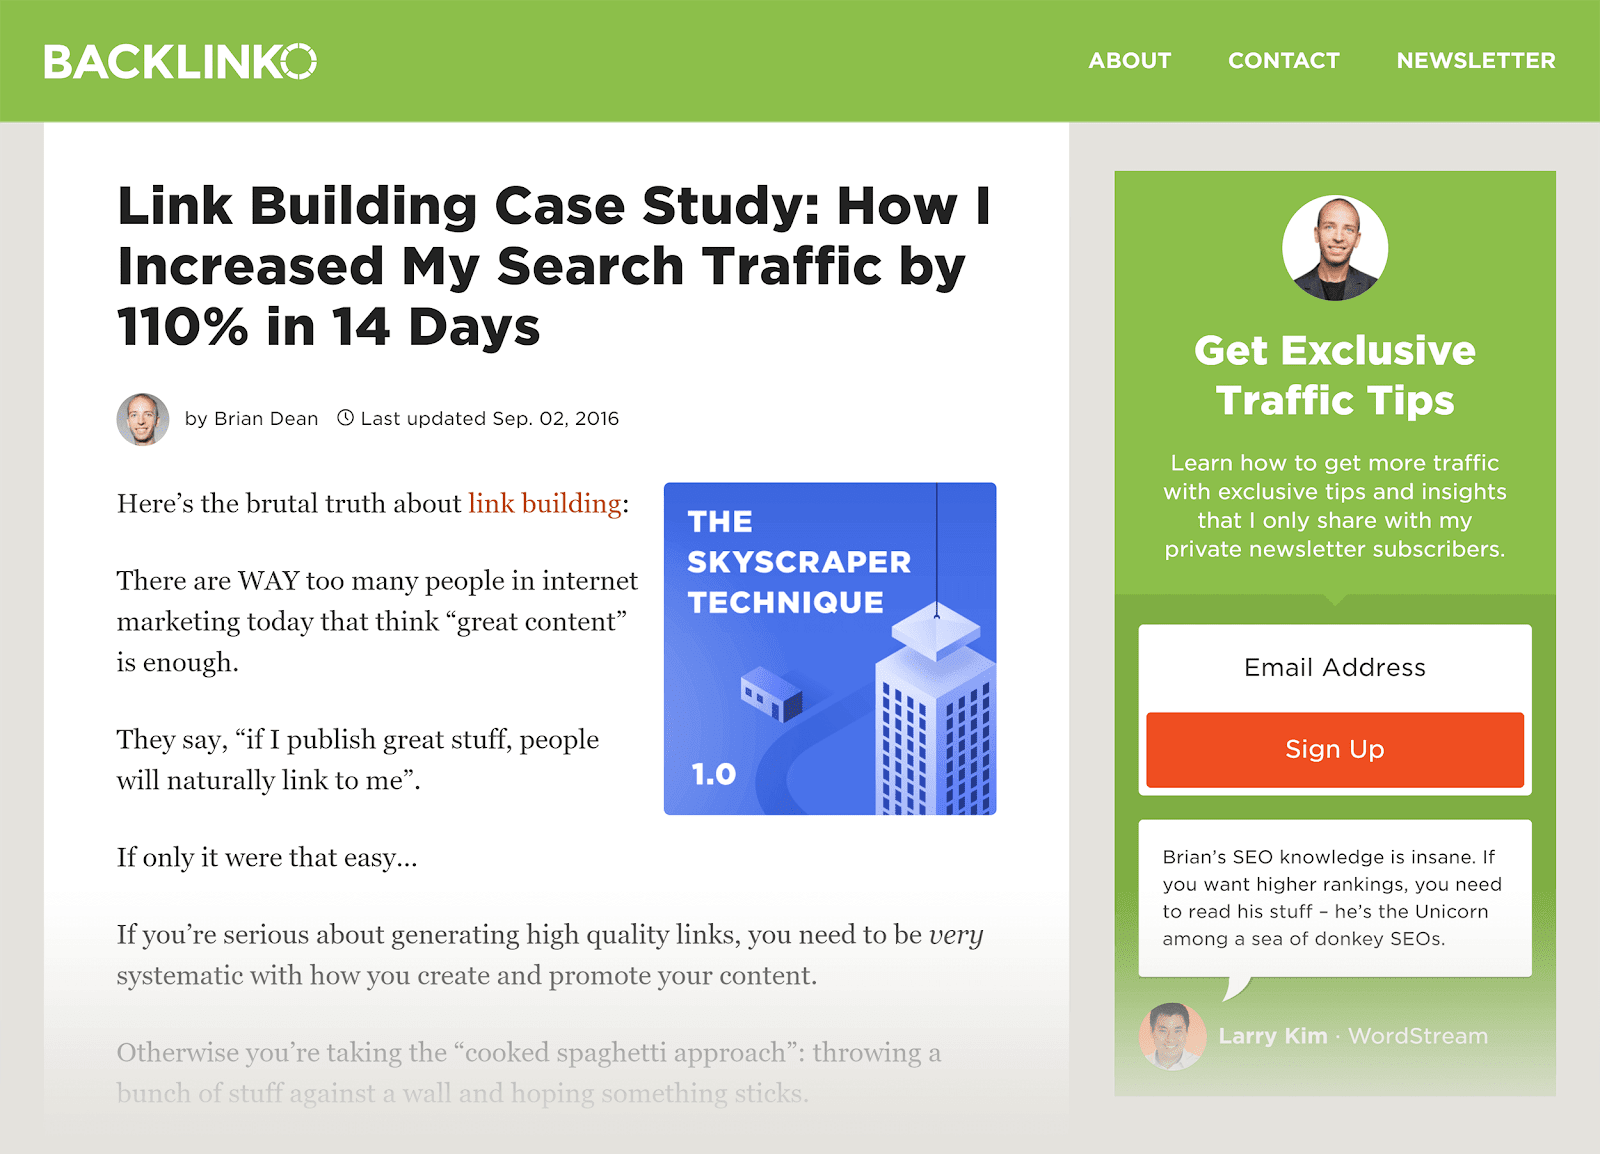 SEO content - Backlinko - Link Building Case Study